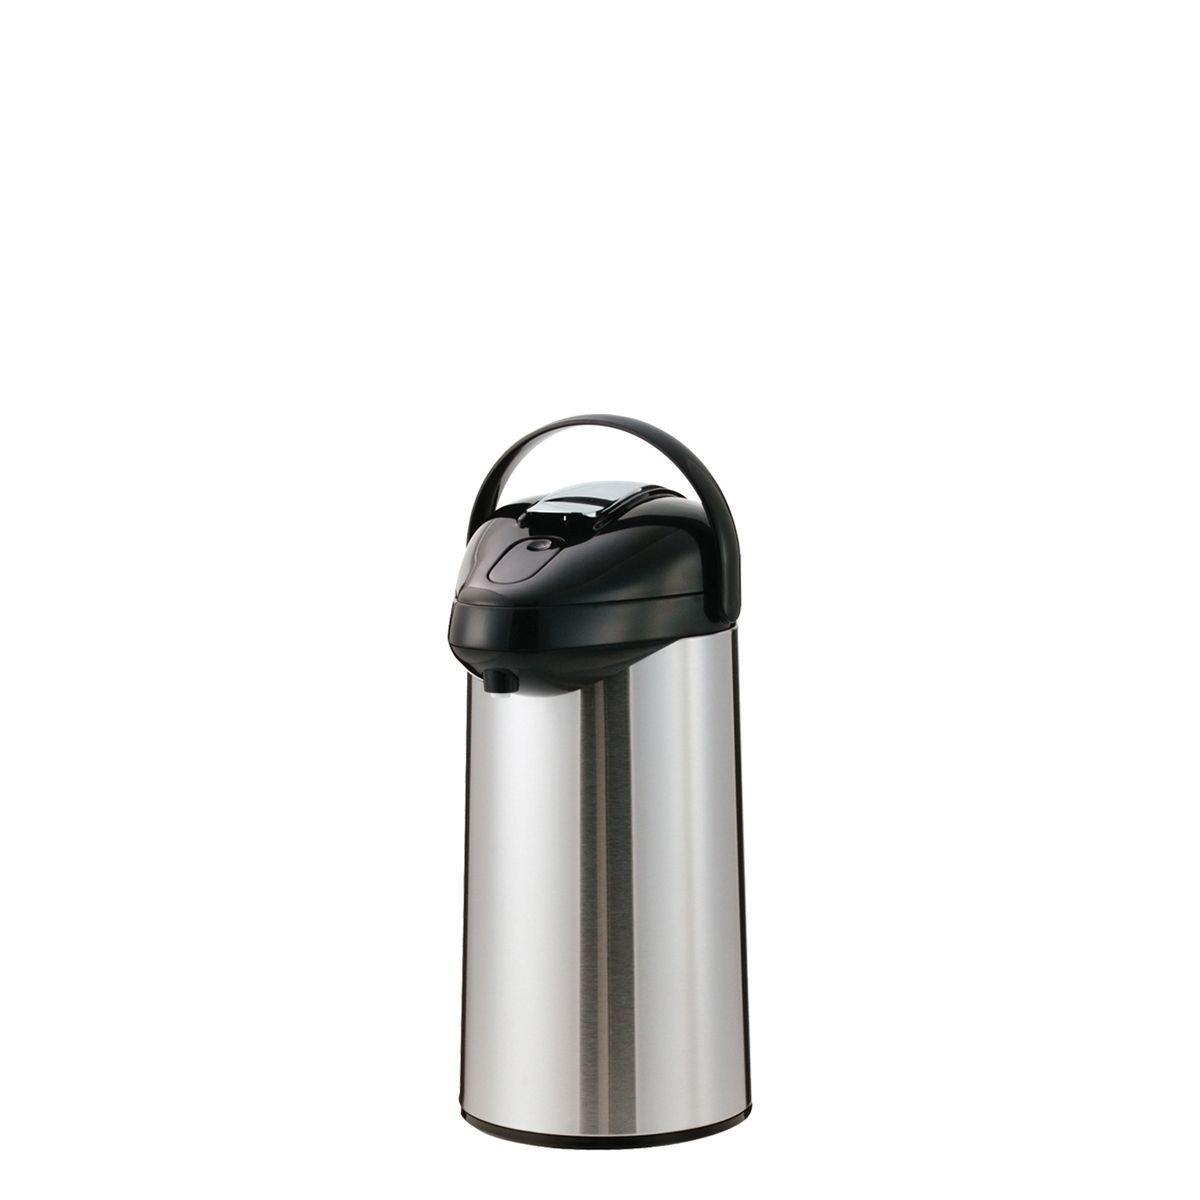 Service Ideas GLAL250 Premium Airpot with Lever Lid, 2.5 Liter